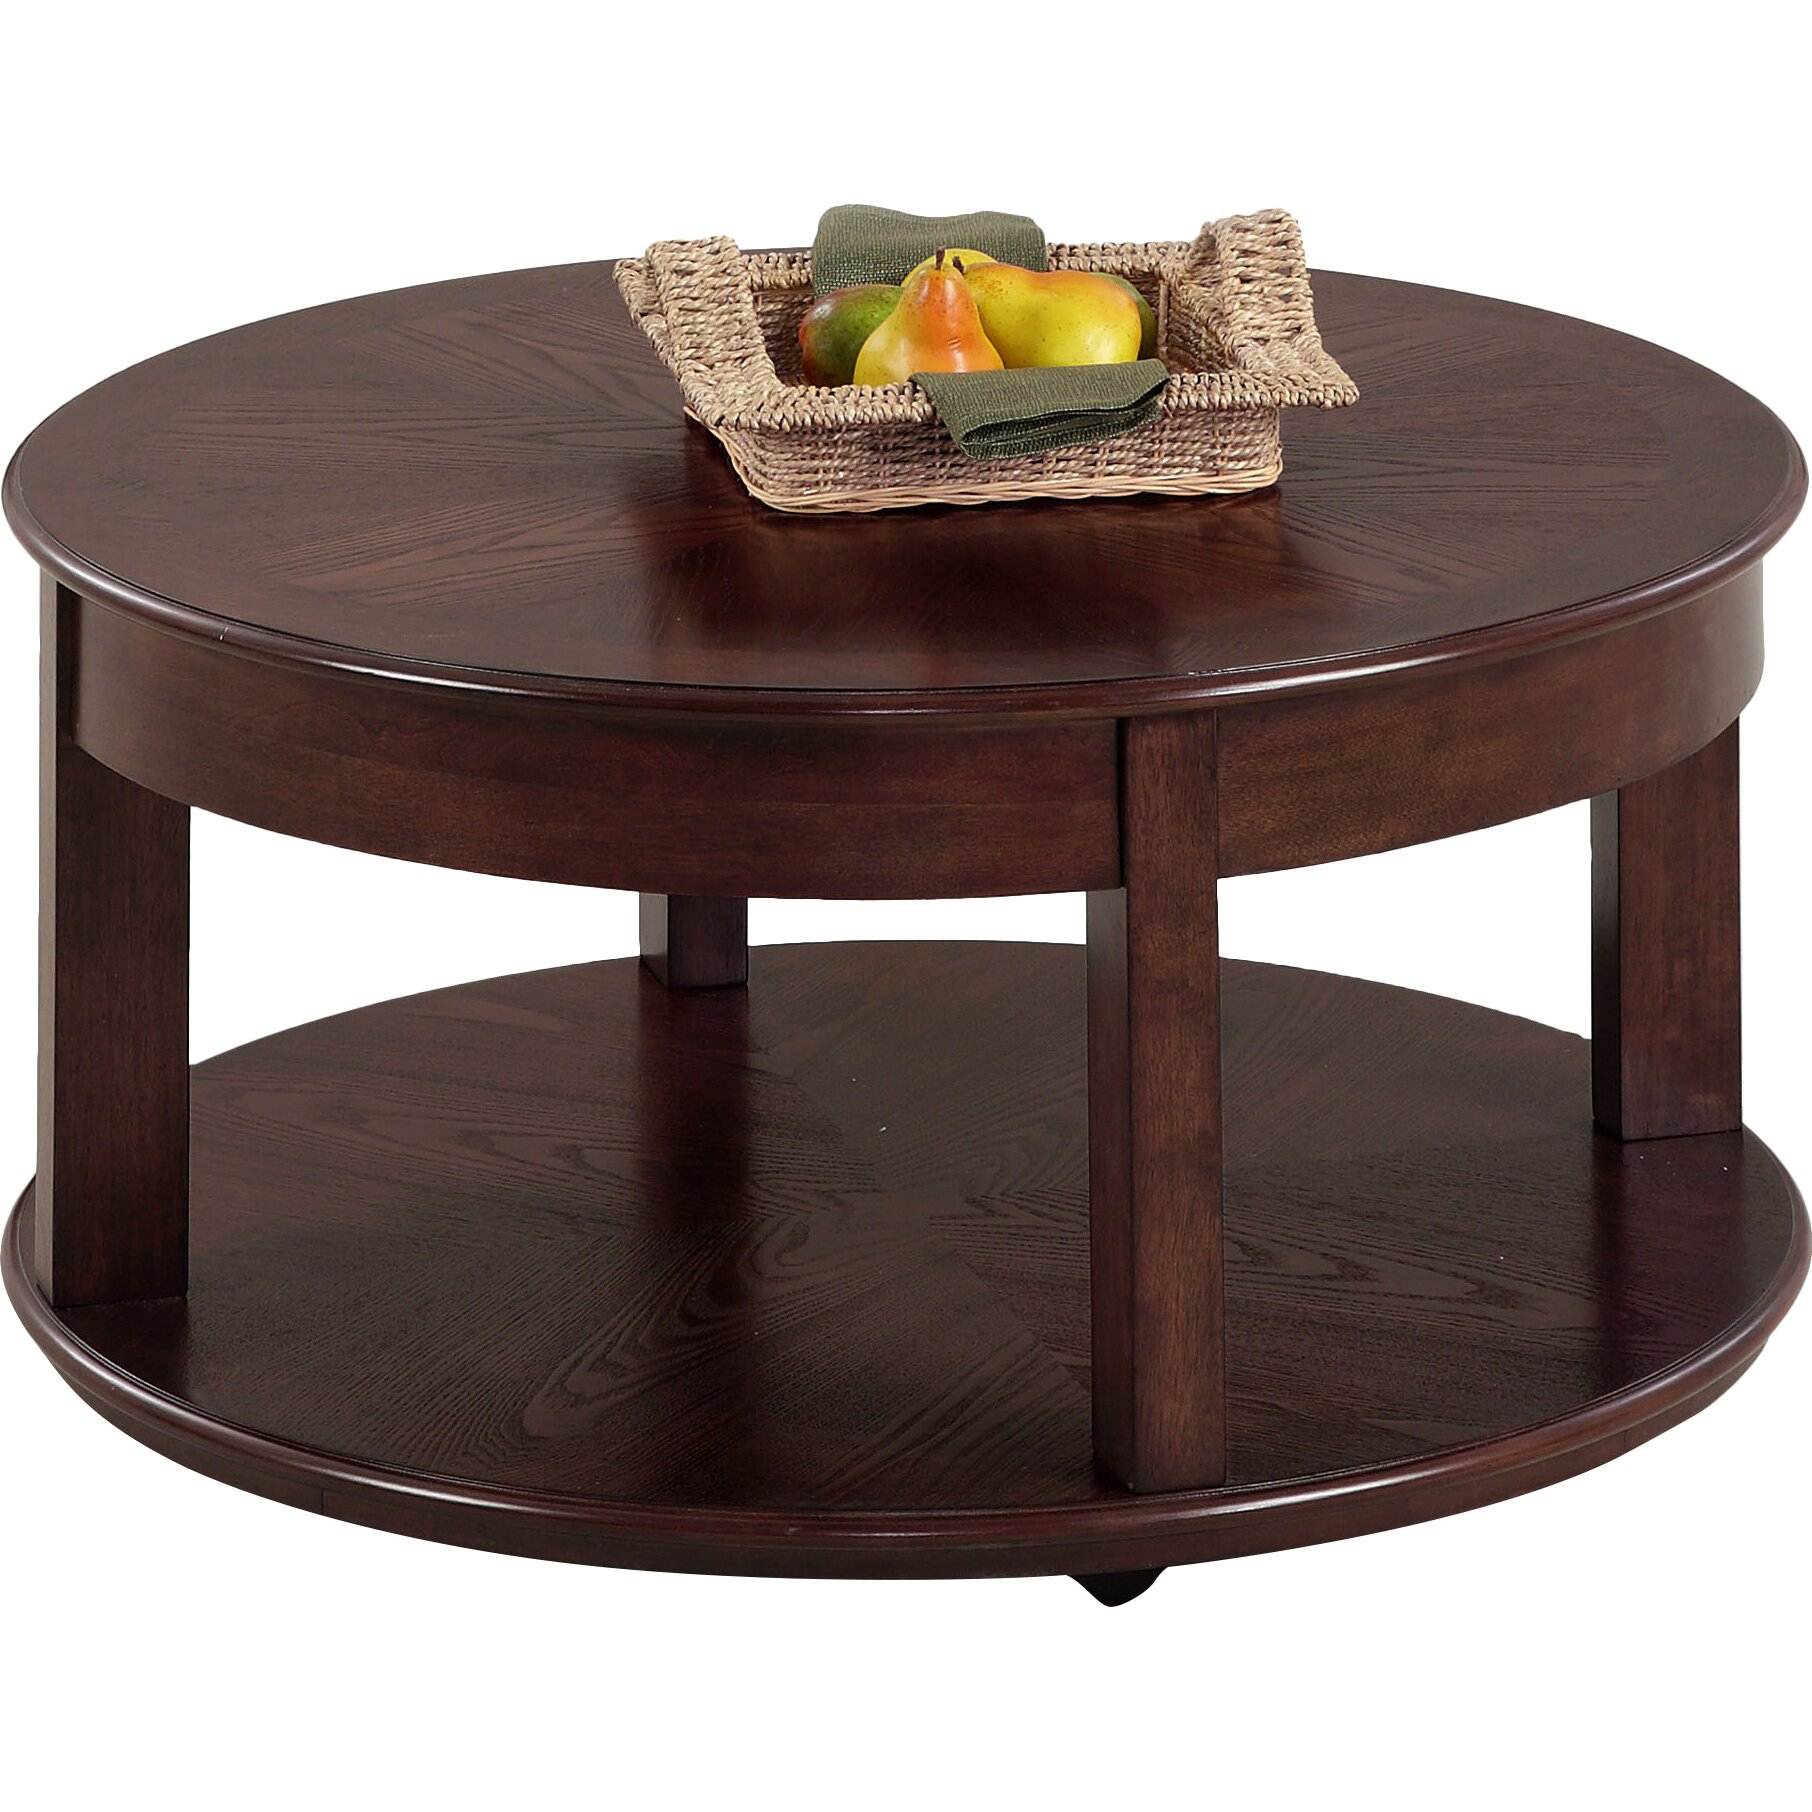 Darby Home Co Wilhoite Castered Round Coffee Table